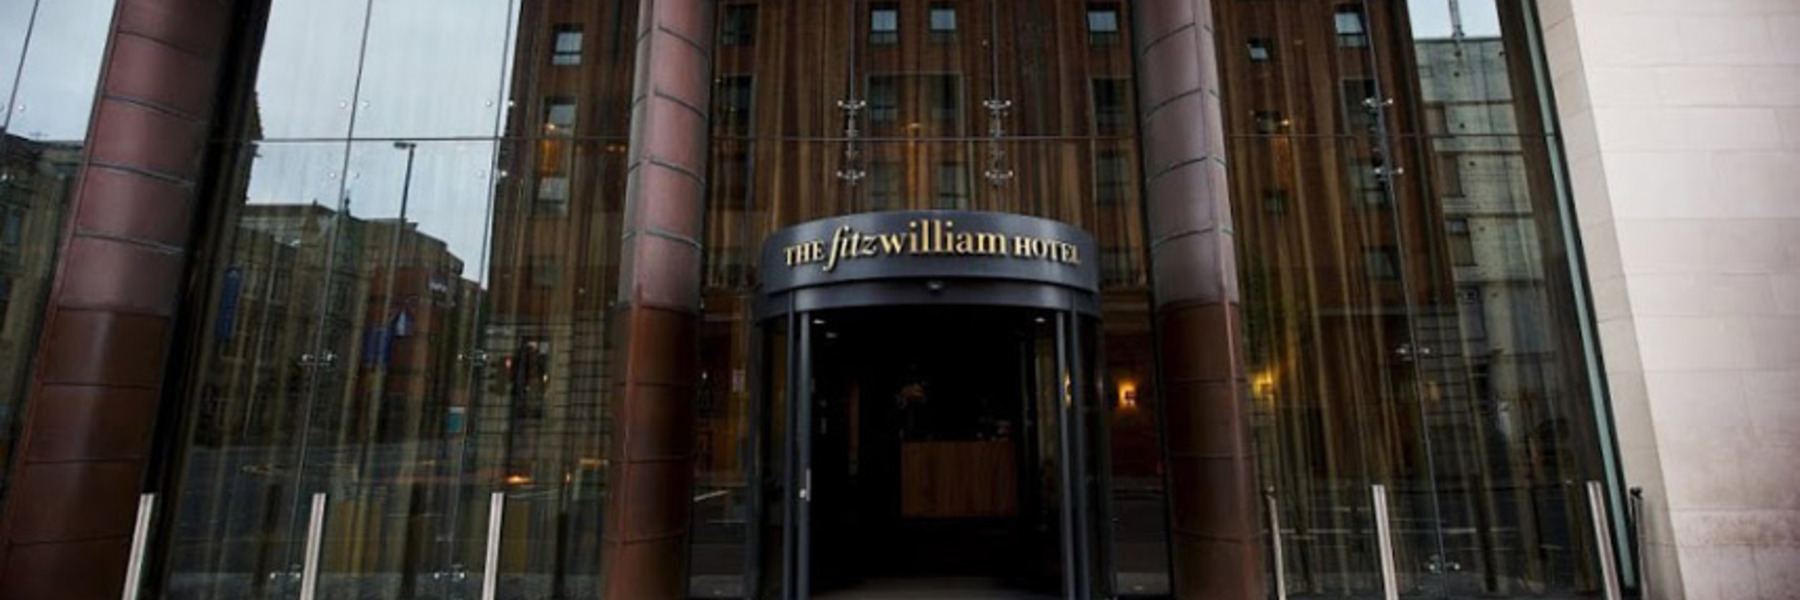 Golf Vacation Package - The Fitzwilliam Hotel Belfast